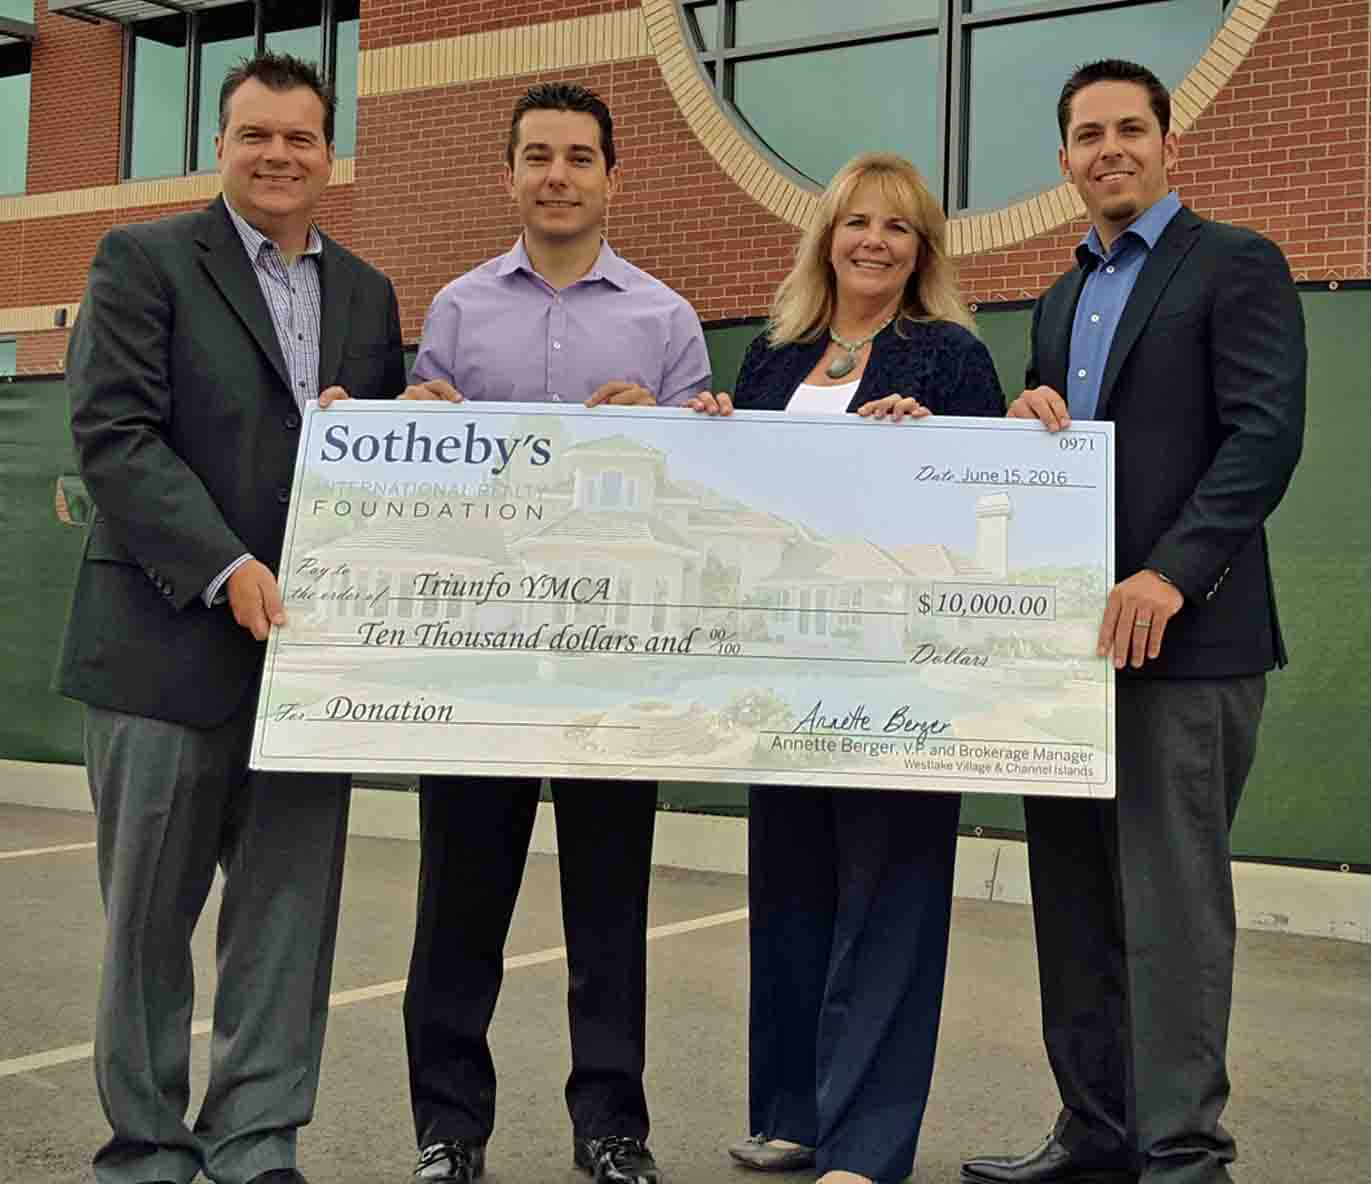 Sotheby's donation to the Triunfo YMCA